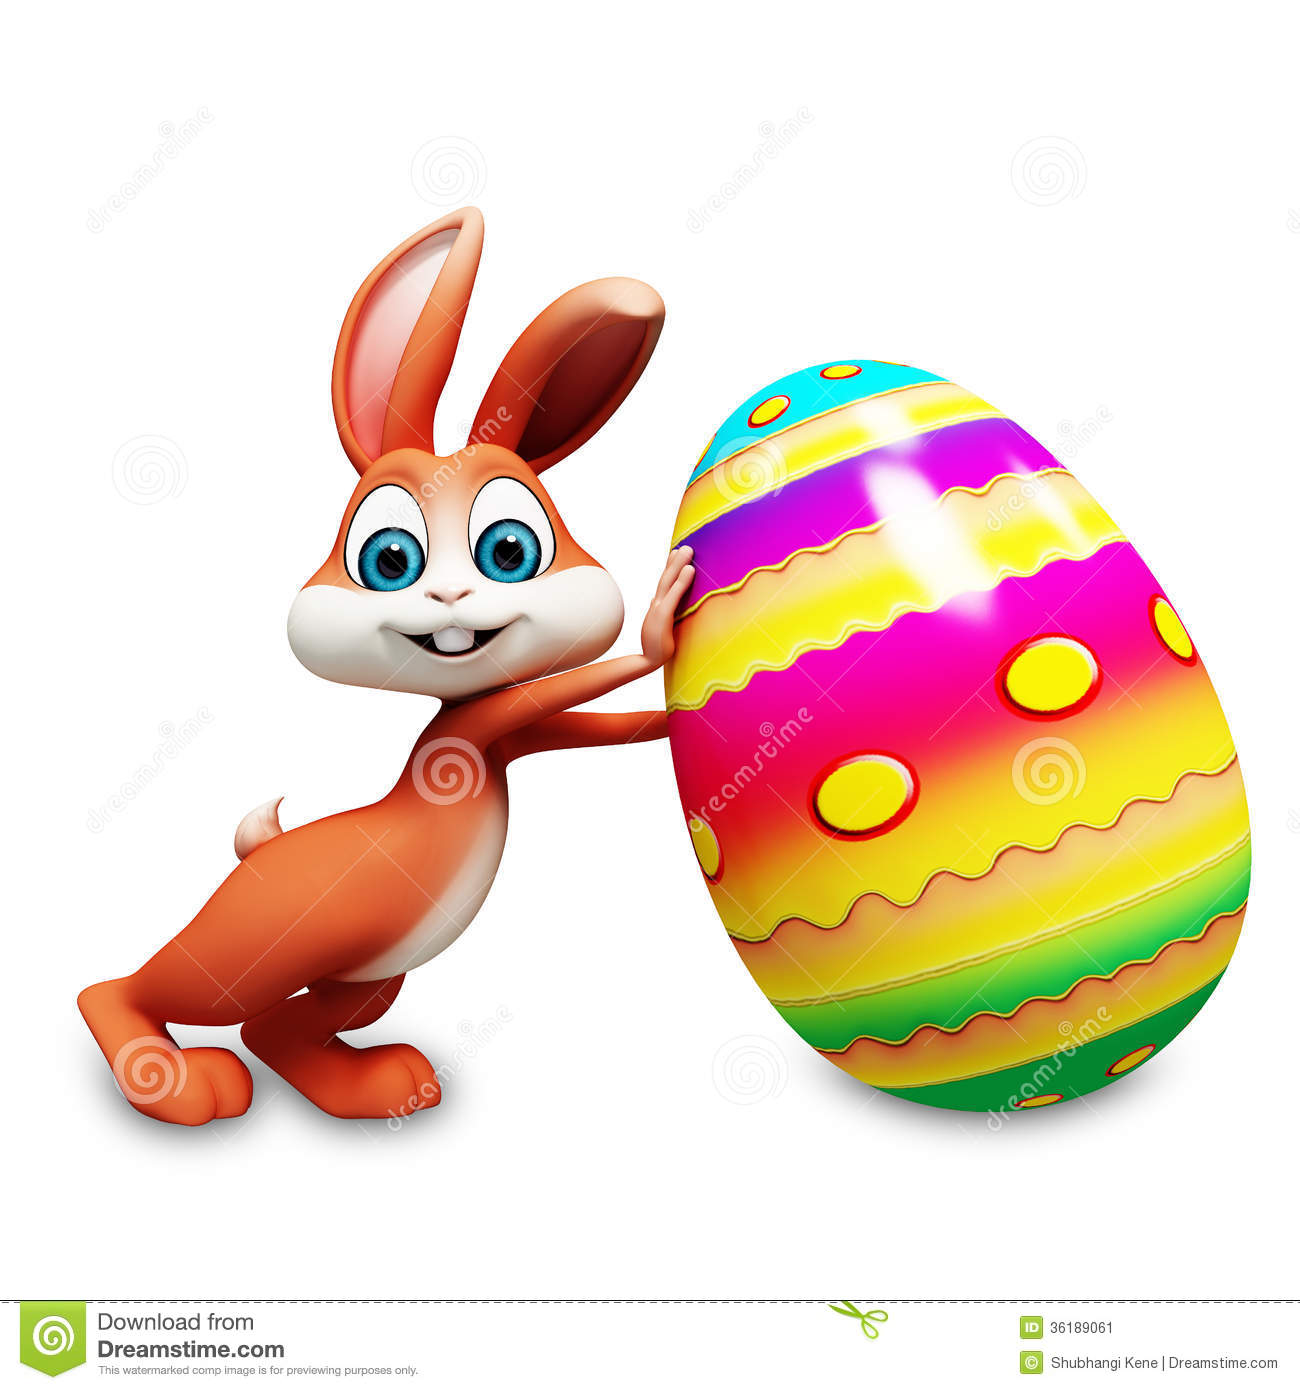 Easter Bunny With Big Eggs Stock Image - Image: 36189061